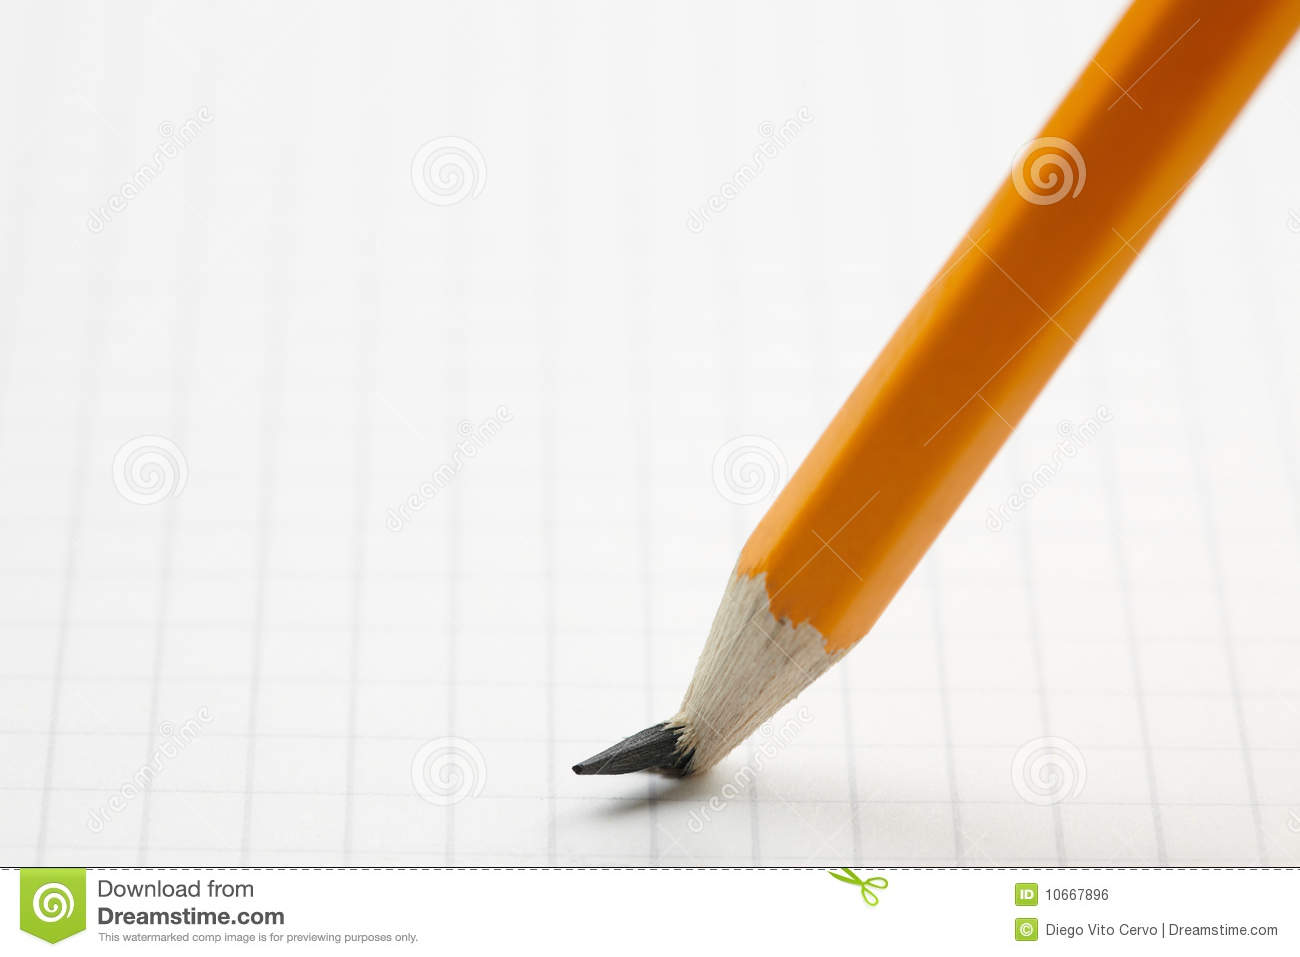 Pencil With Broken Point Royalty Free Stock Image   Image  10667896